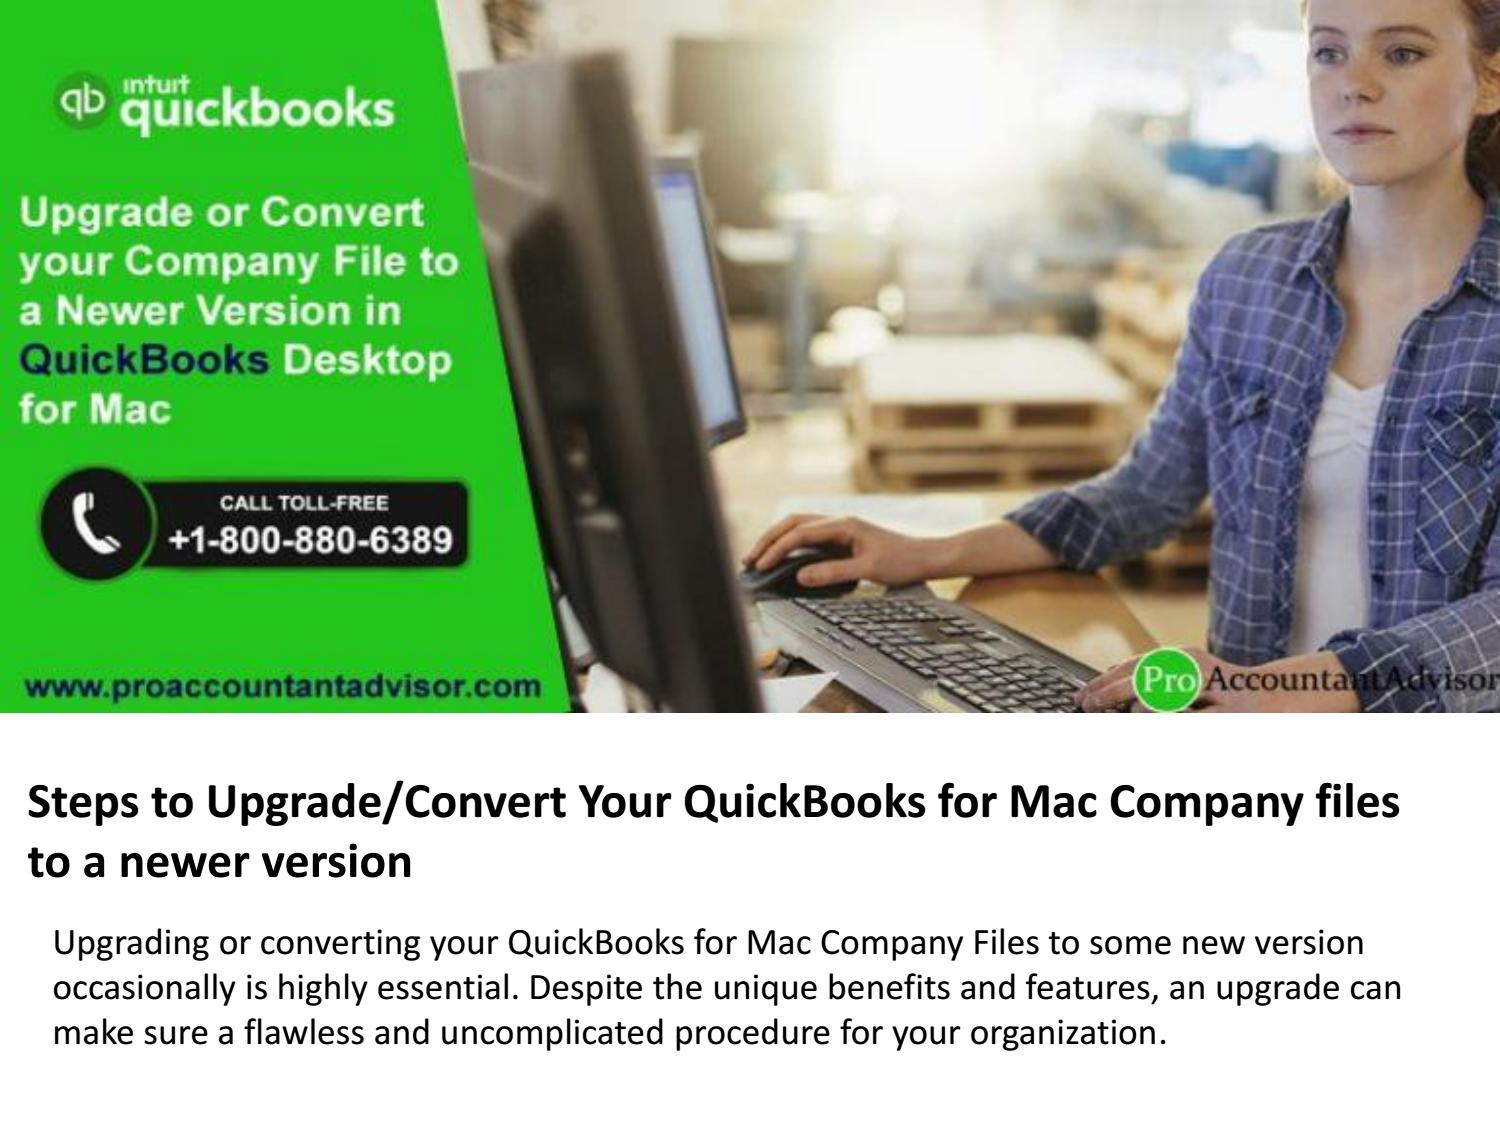 Upgrading your Company File to a Newer Version in QuickBooks